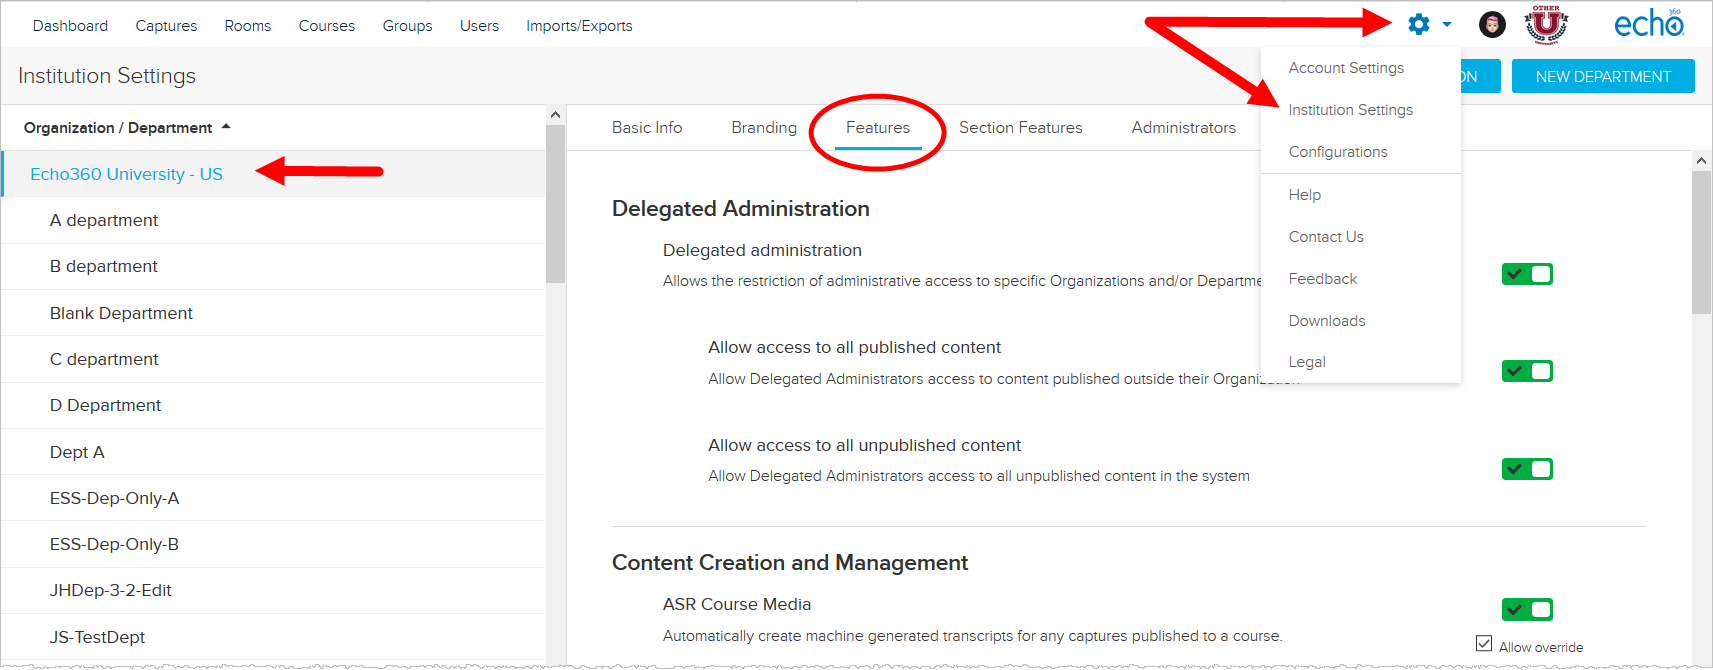 Institution Settings Features page with navigation identified for steps as described